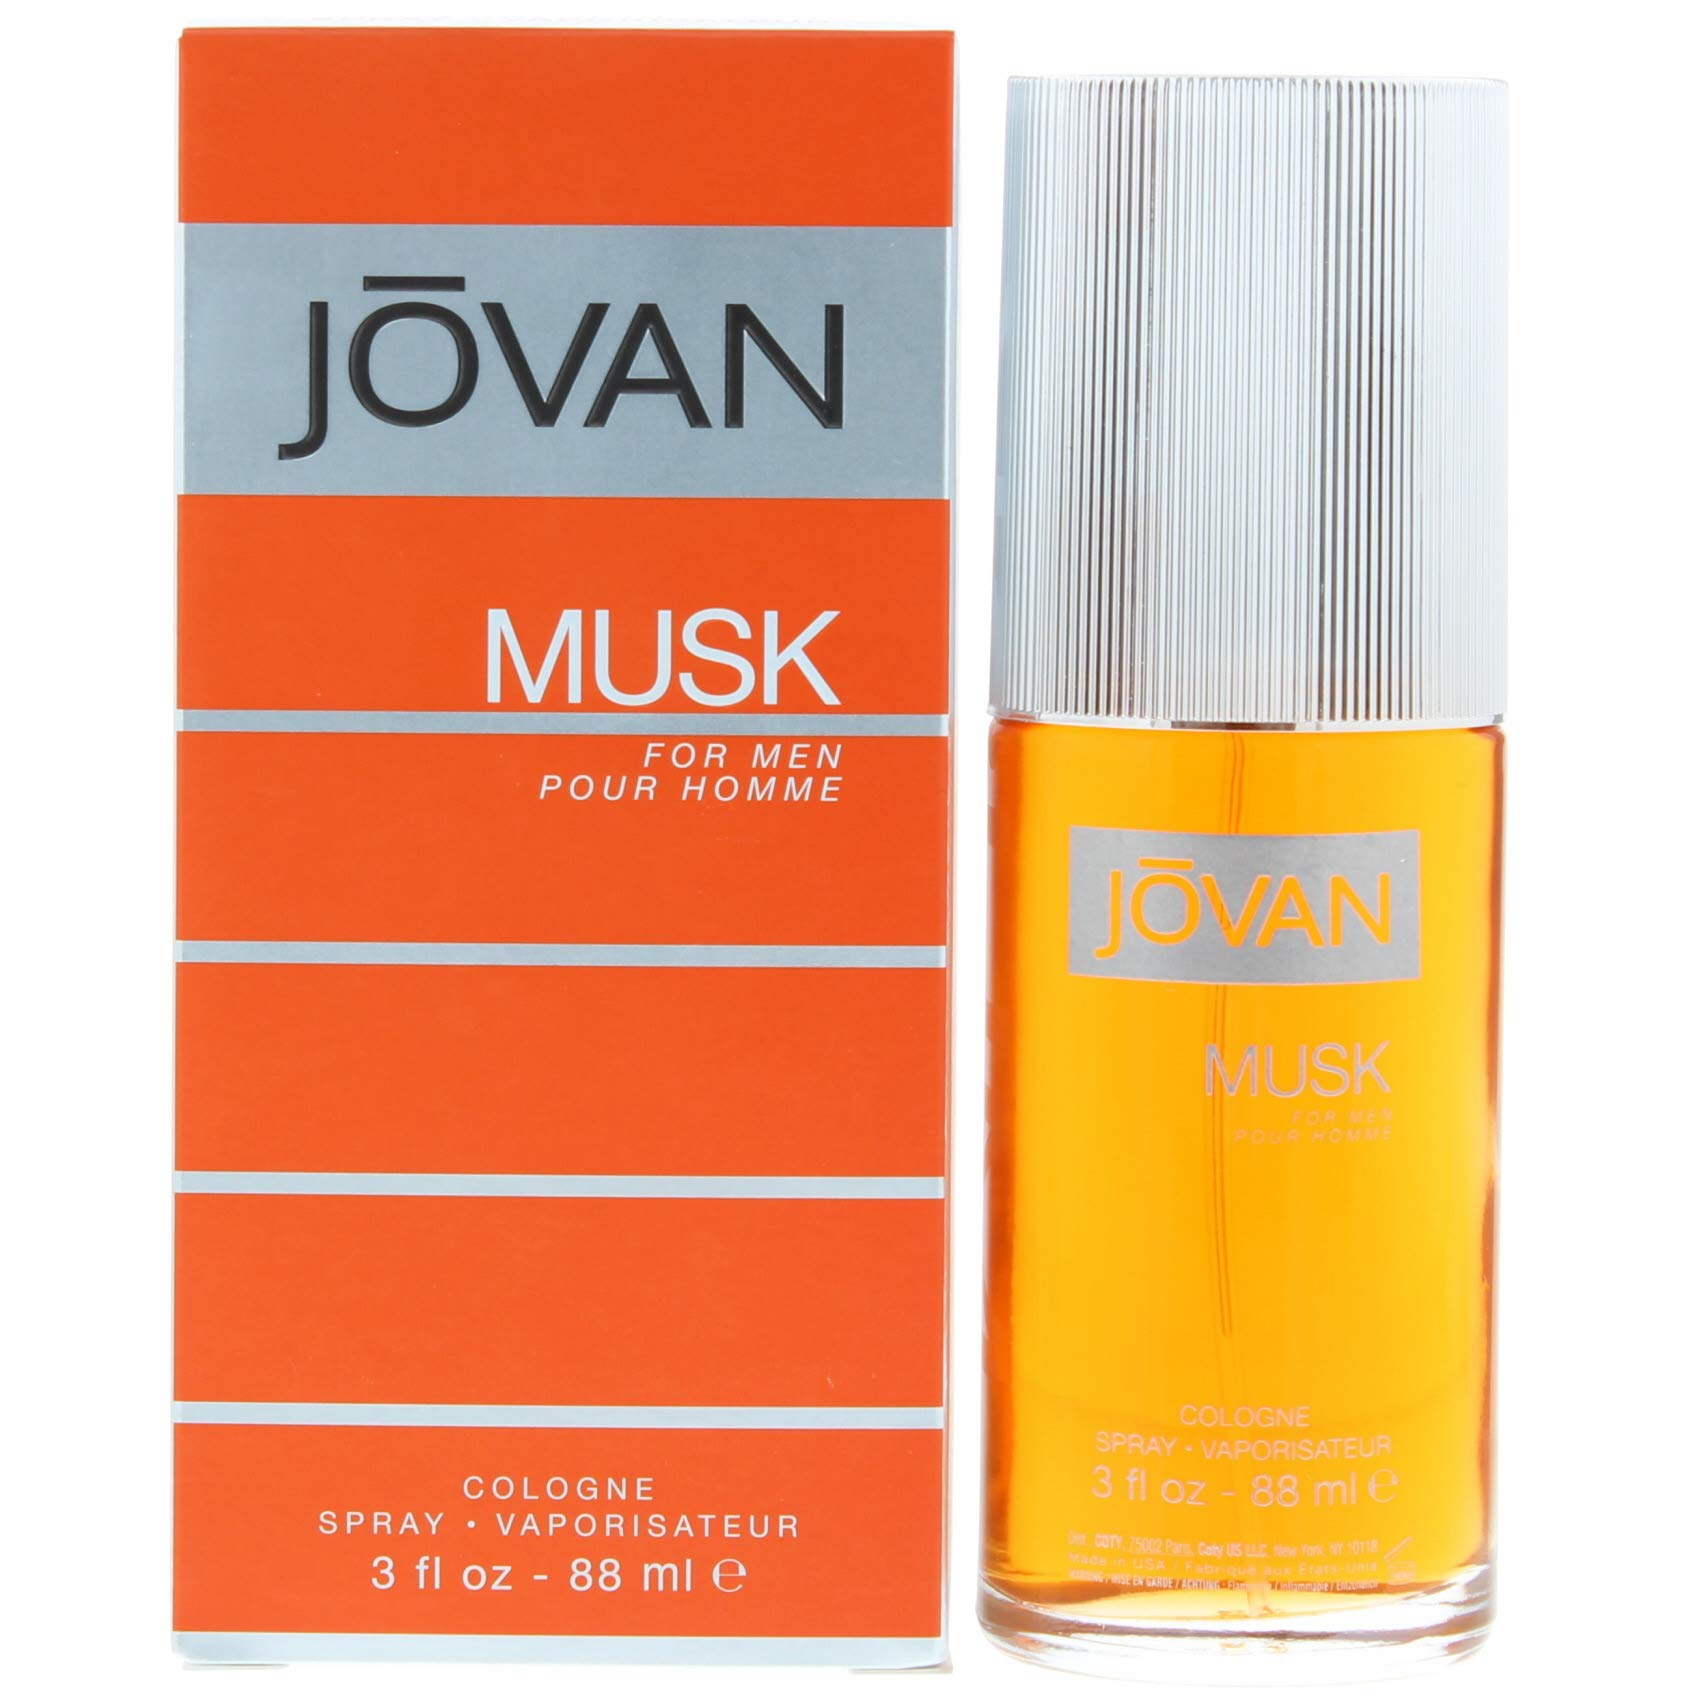 Jovan Musk by Coty for Men 3 Fl Oz,Cologne Spray